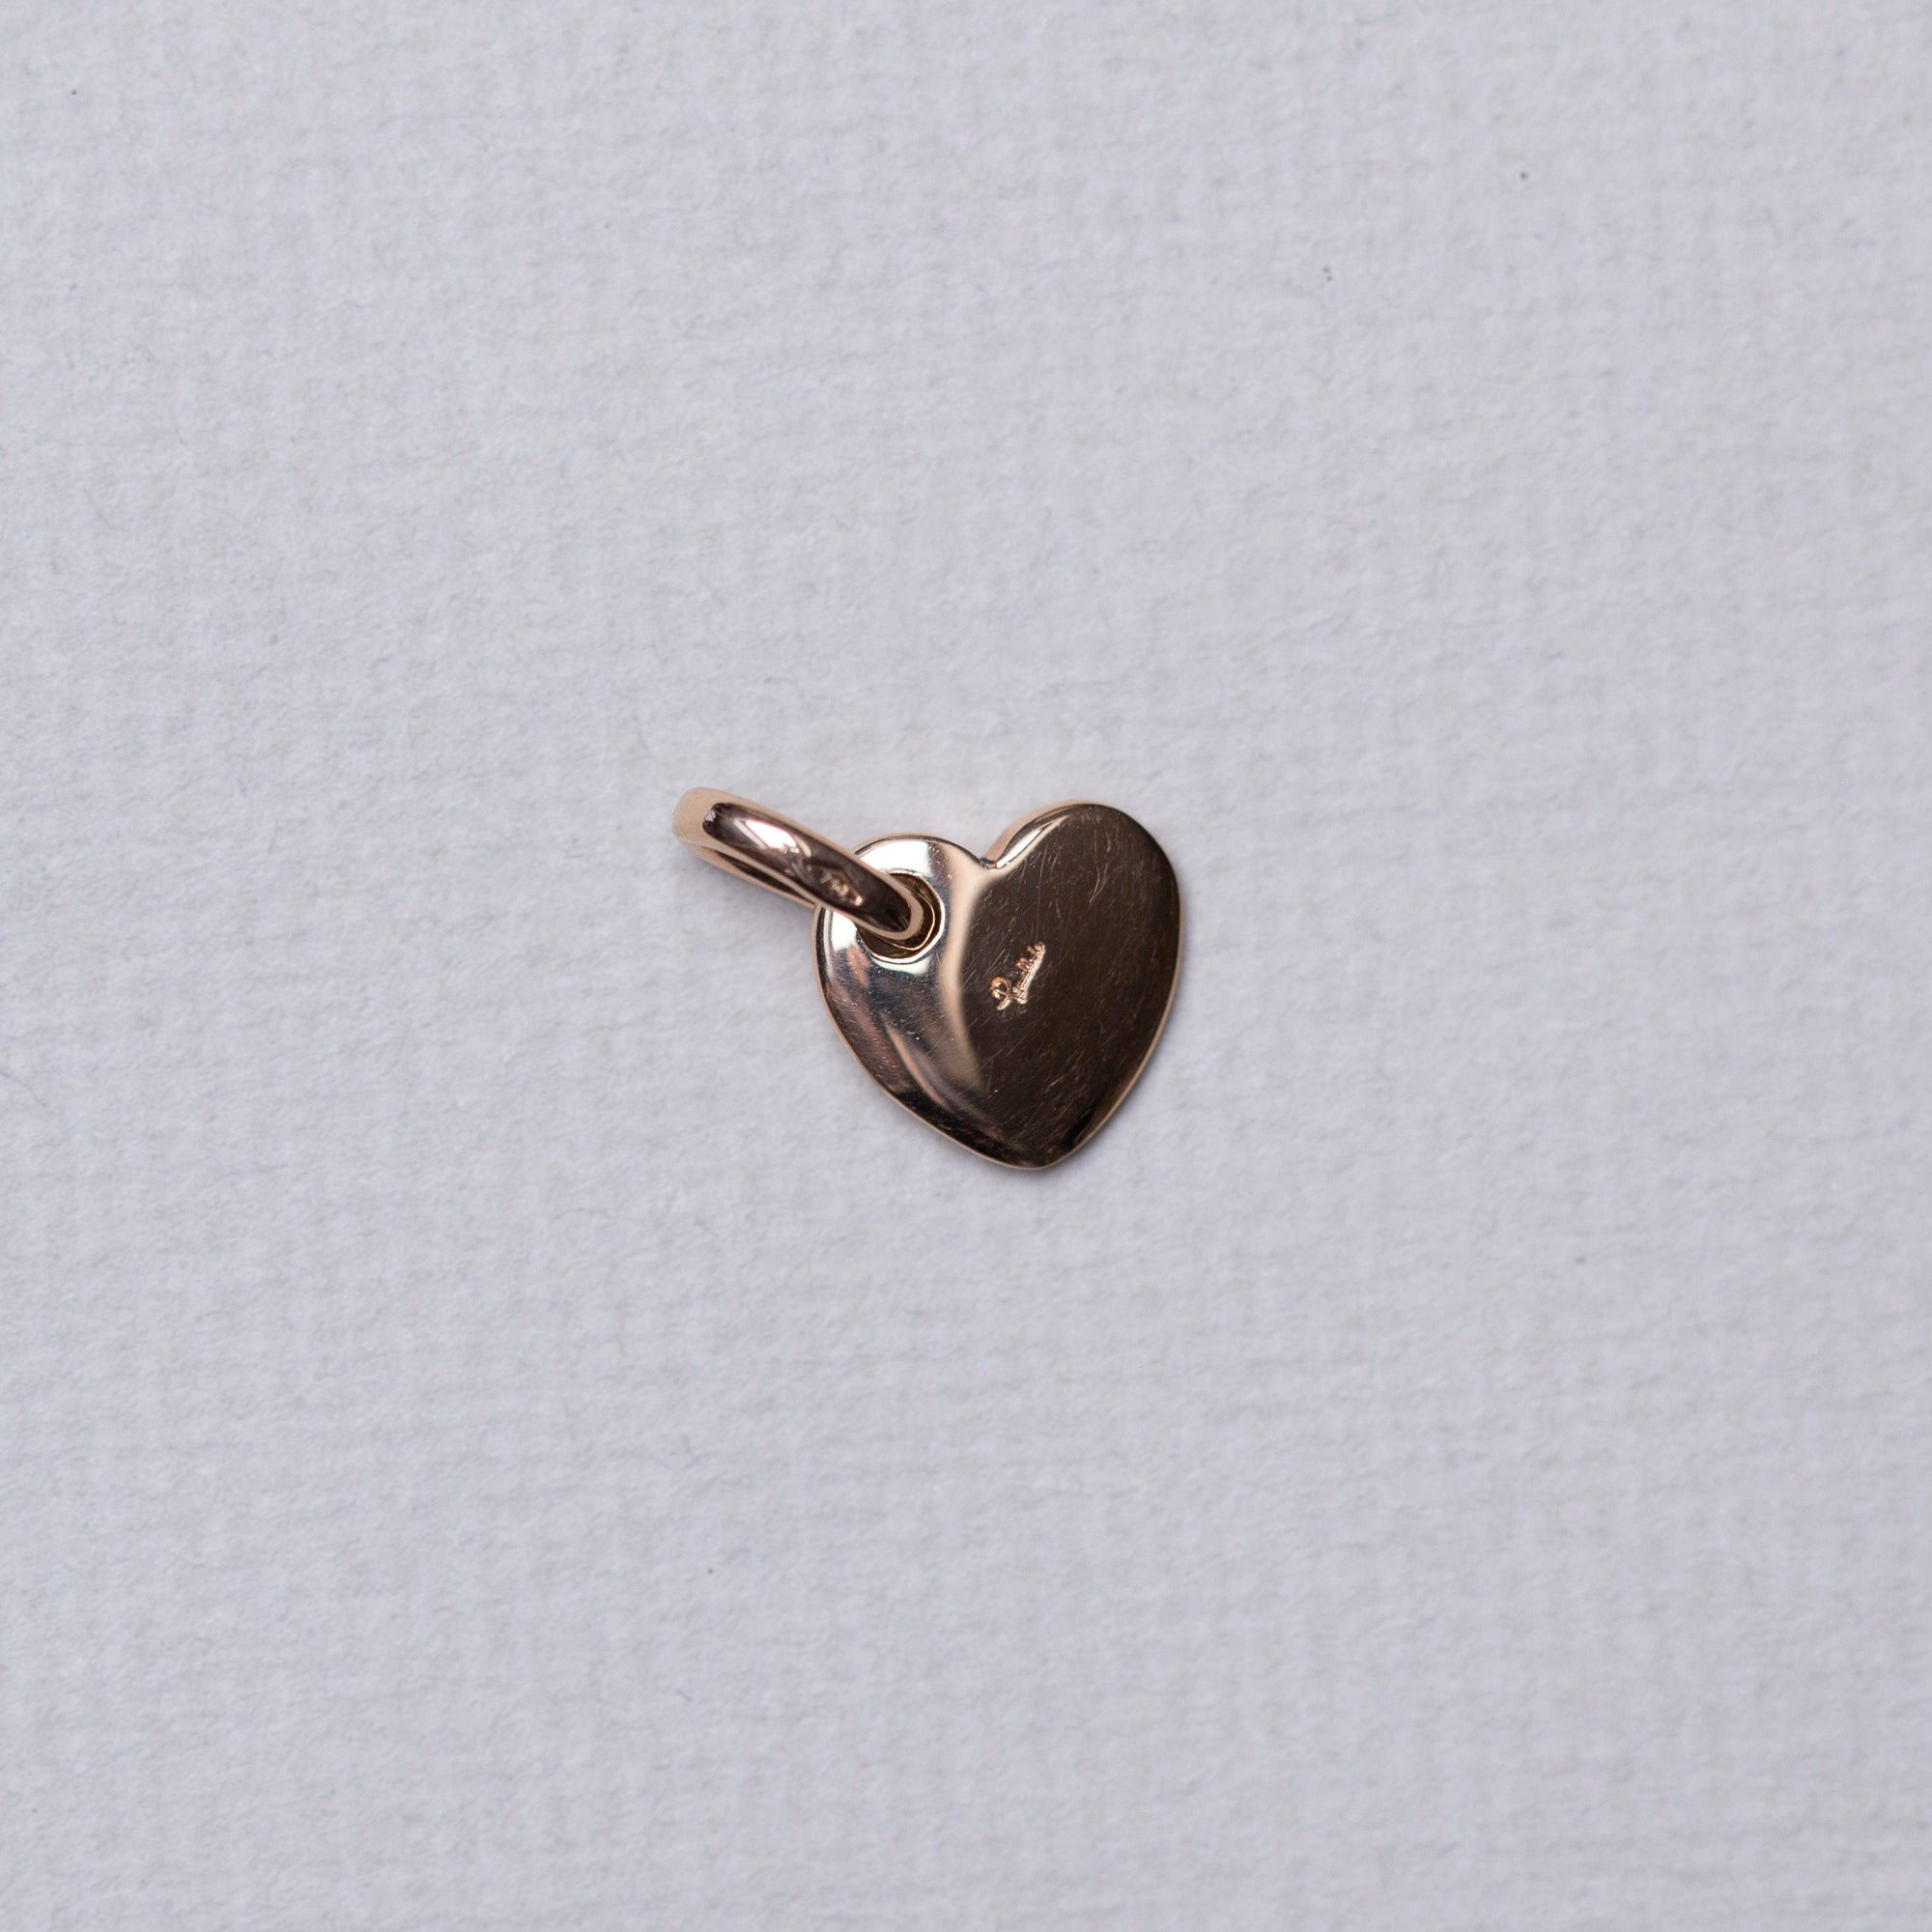 18ct Gold Heart Pendant Charm